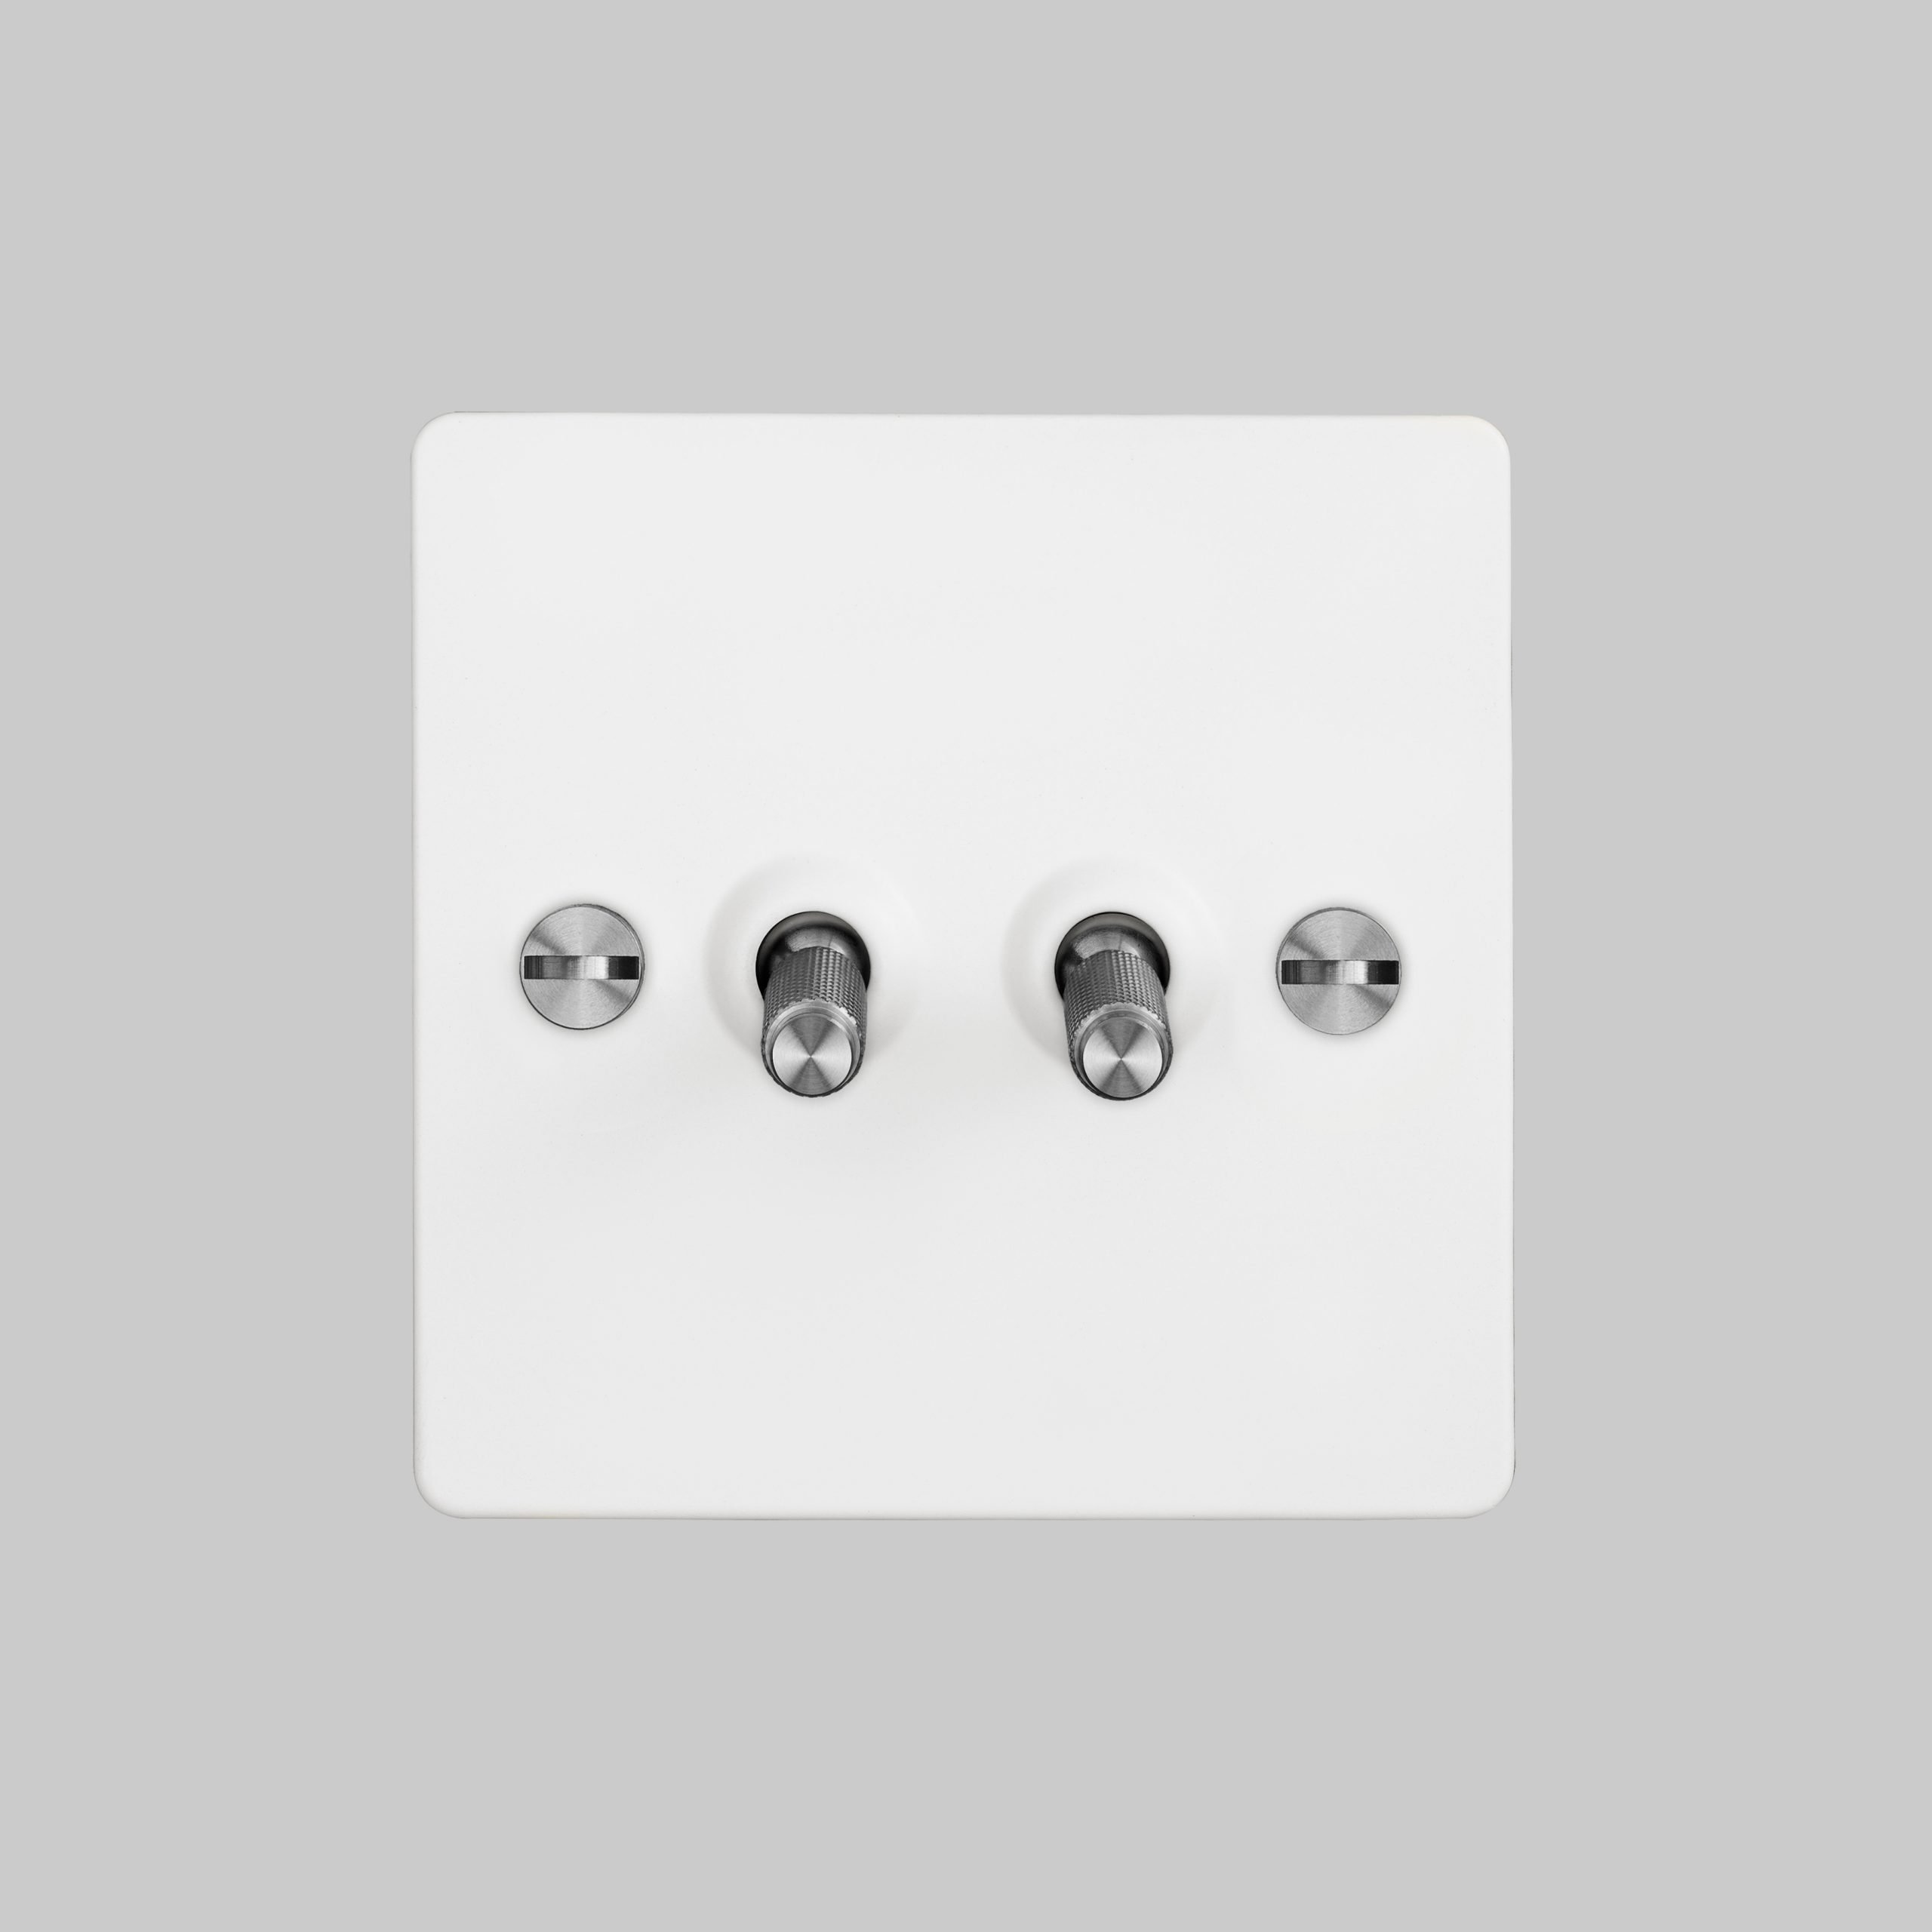 2. 2G_Toggle_Front_White_Steel